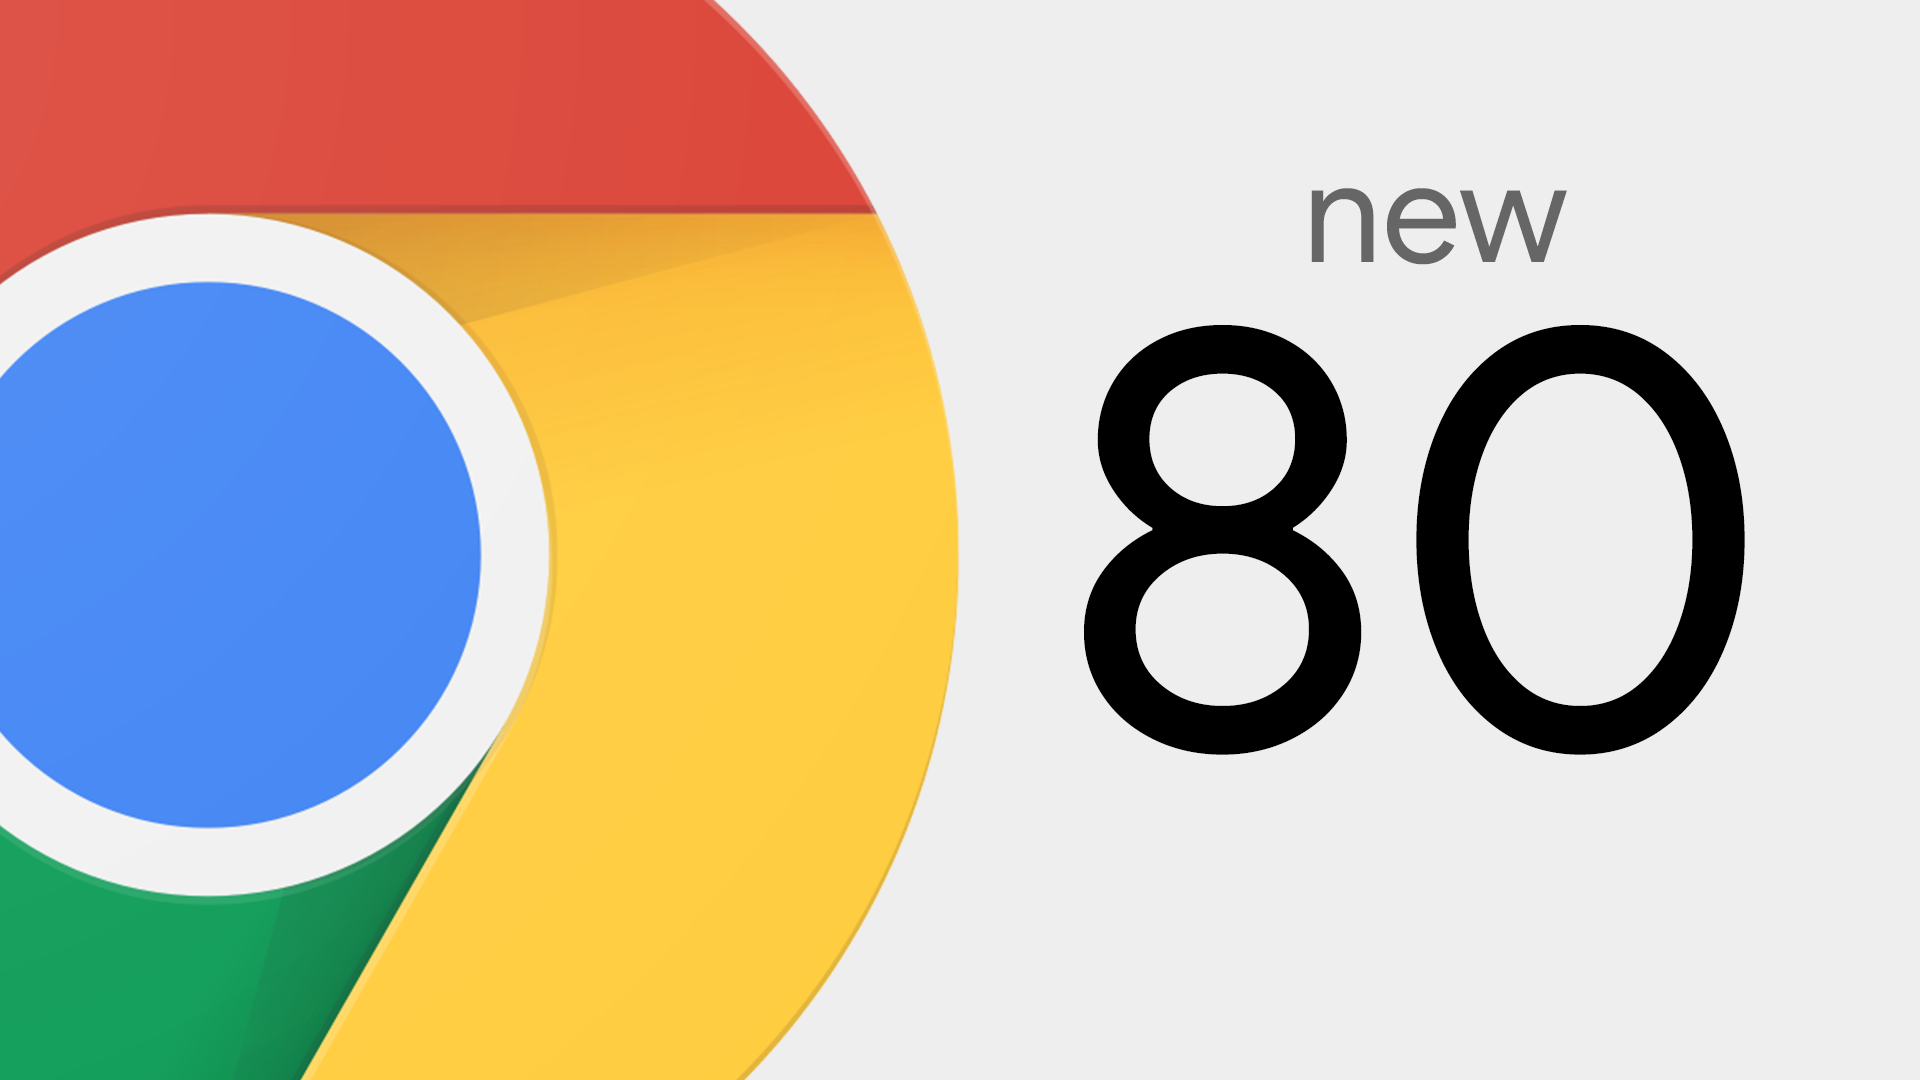 New in Chrome 80